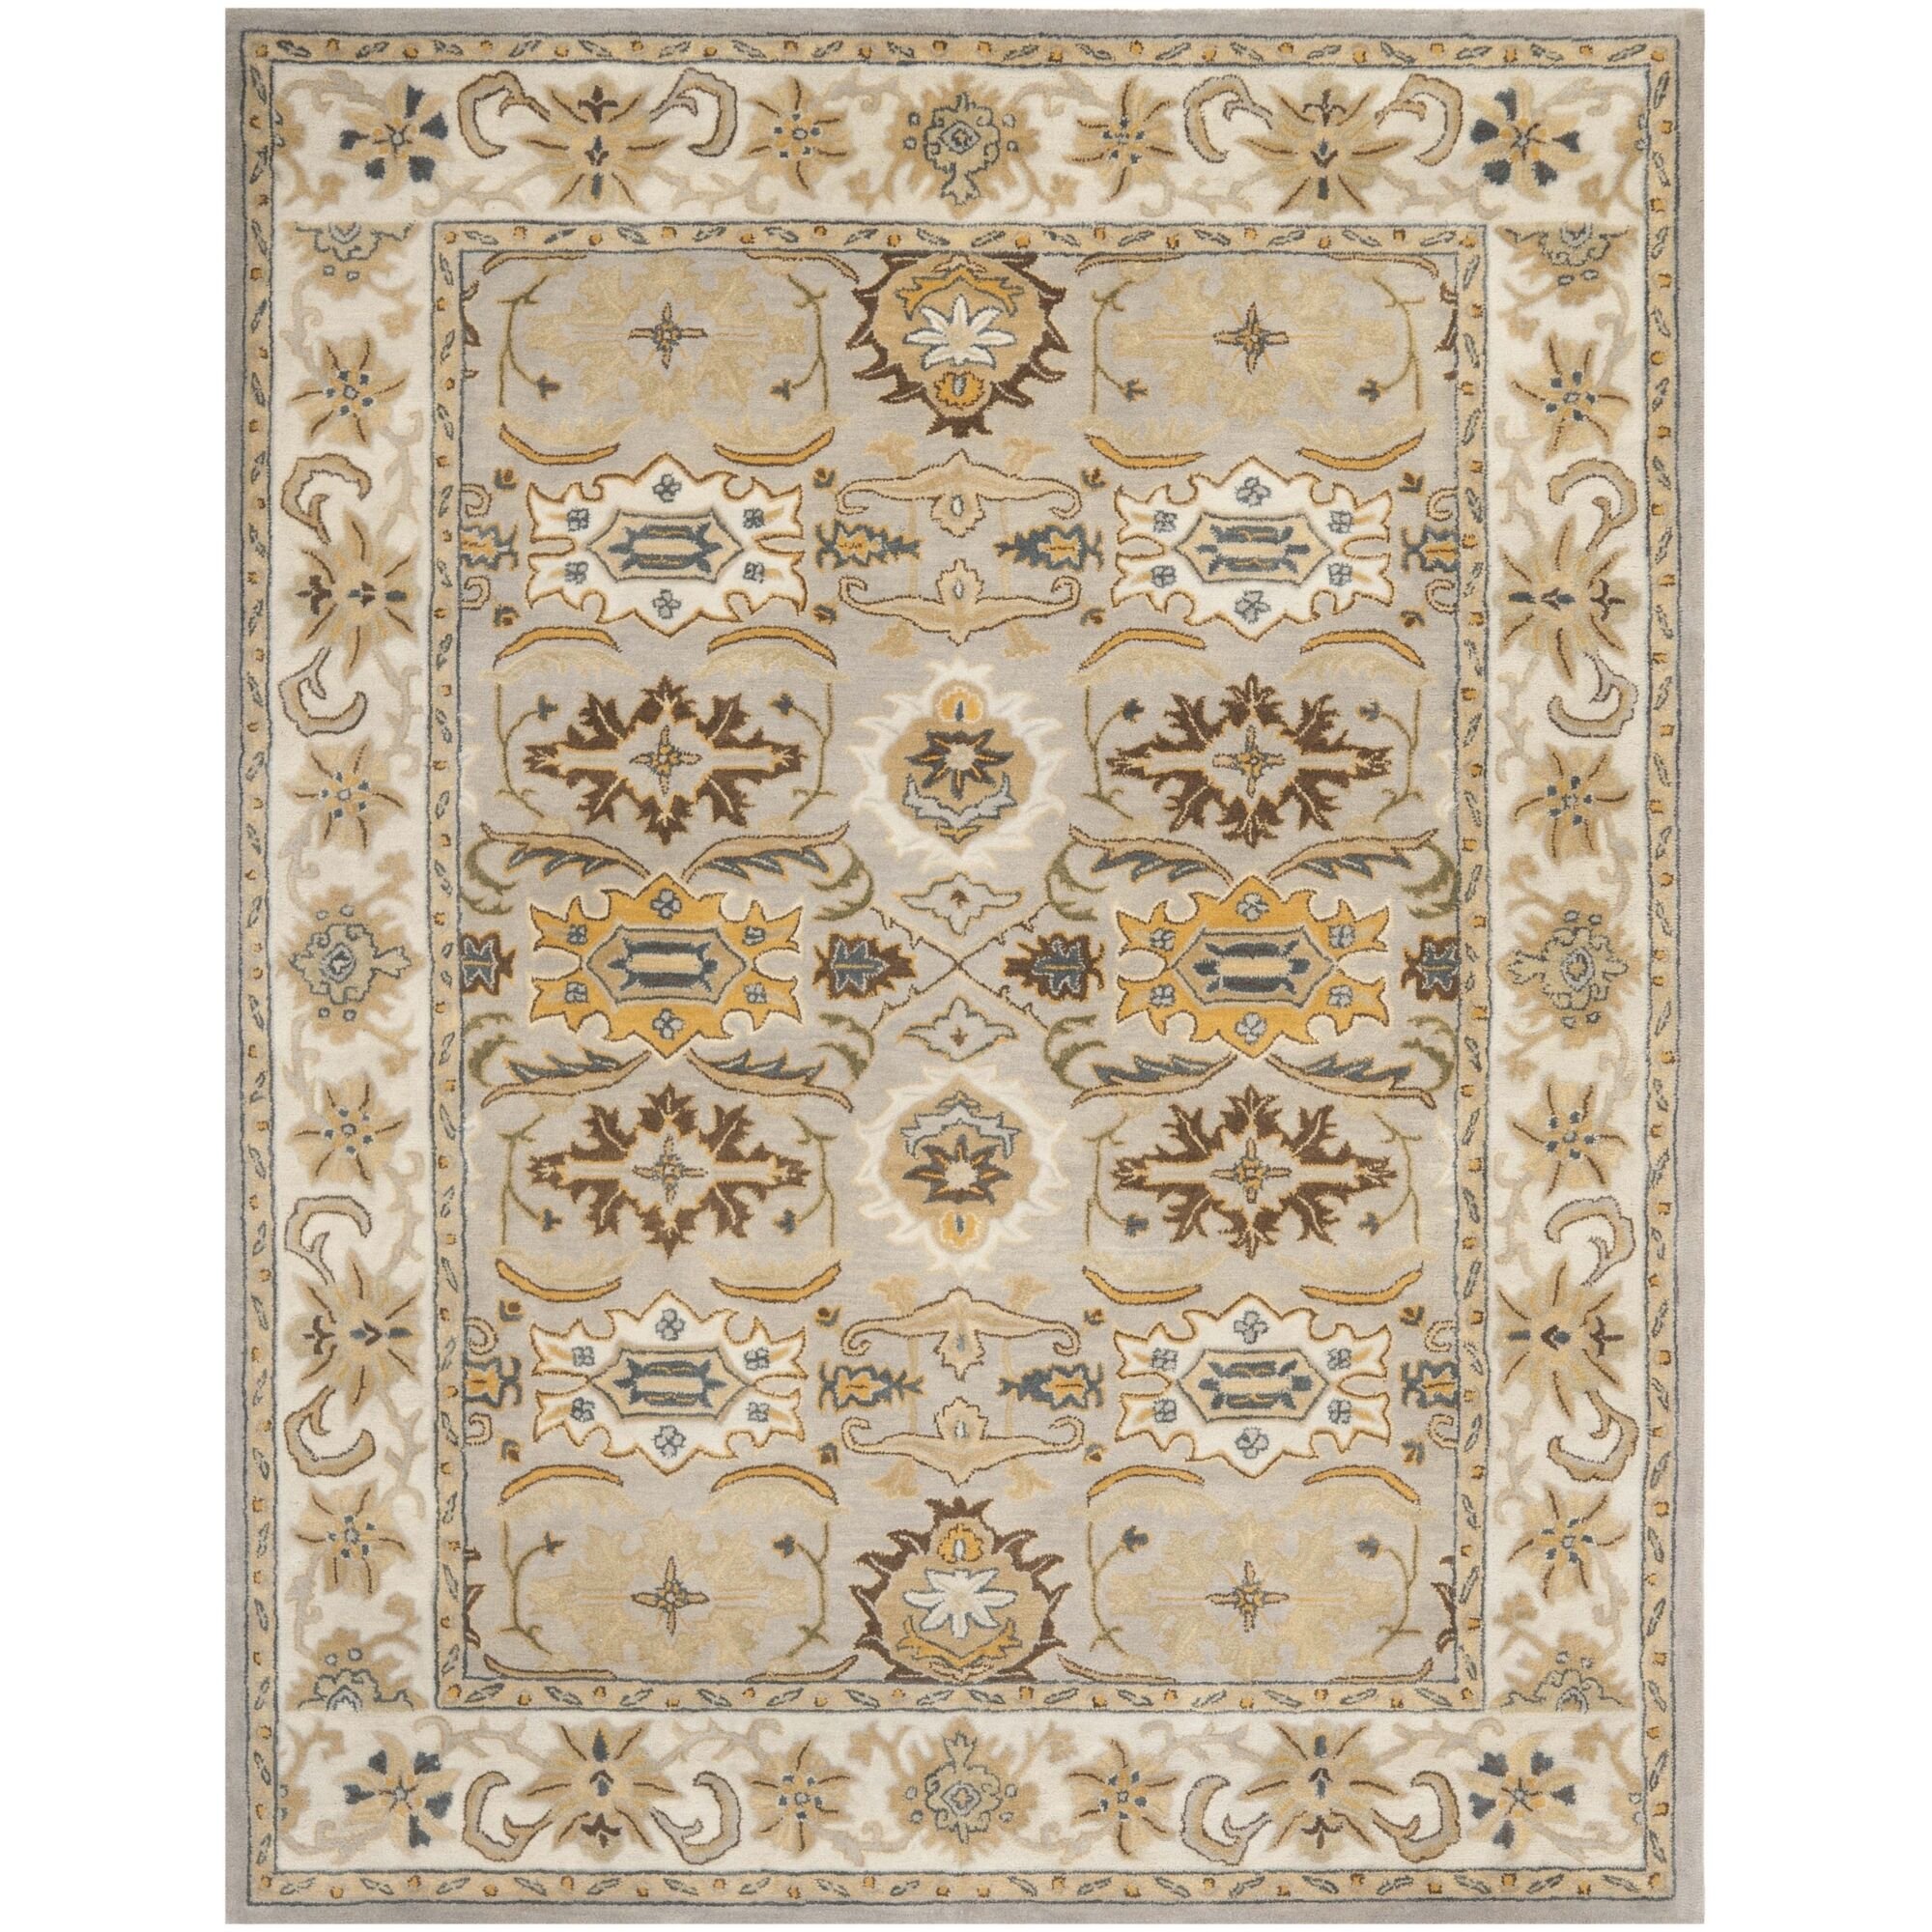 Cranmore Light Grey/Grey Area Rug Rug Size: Rectangle 9'6